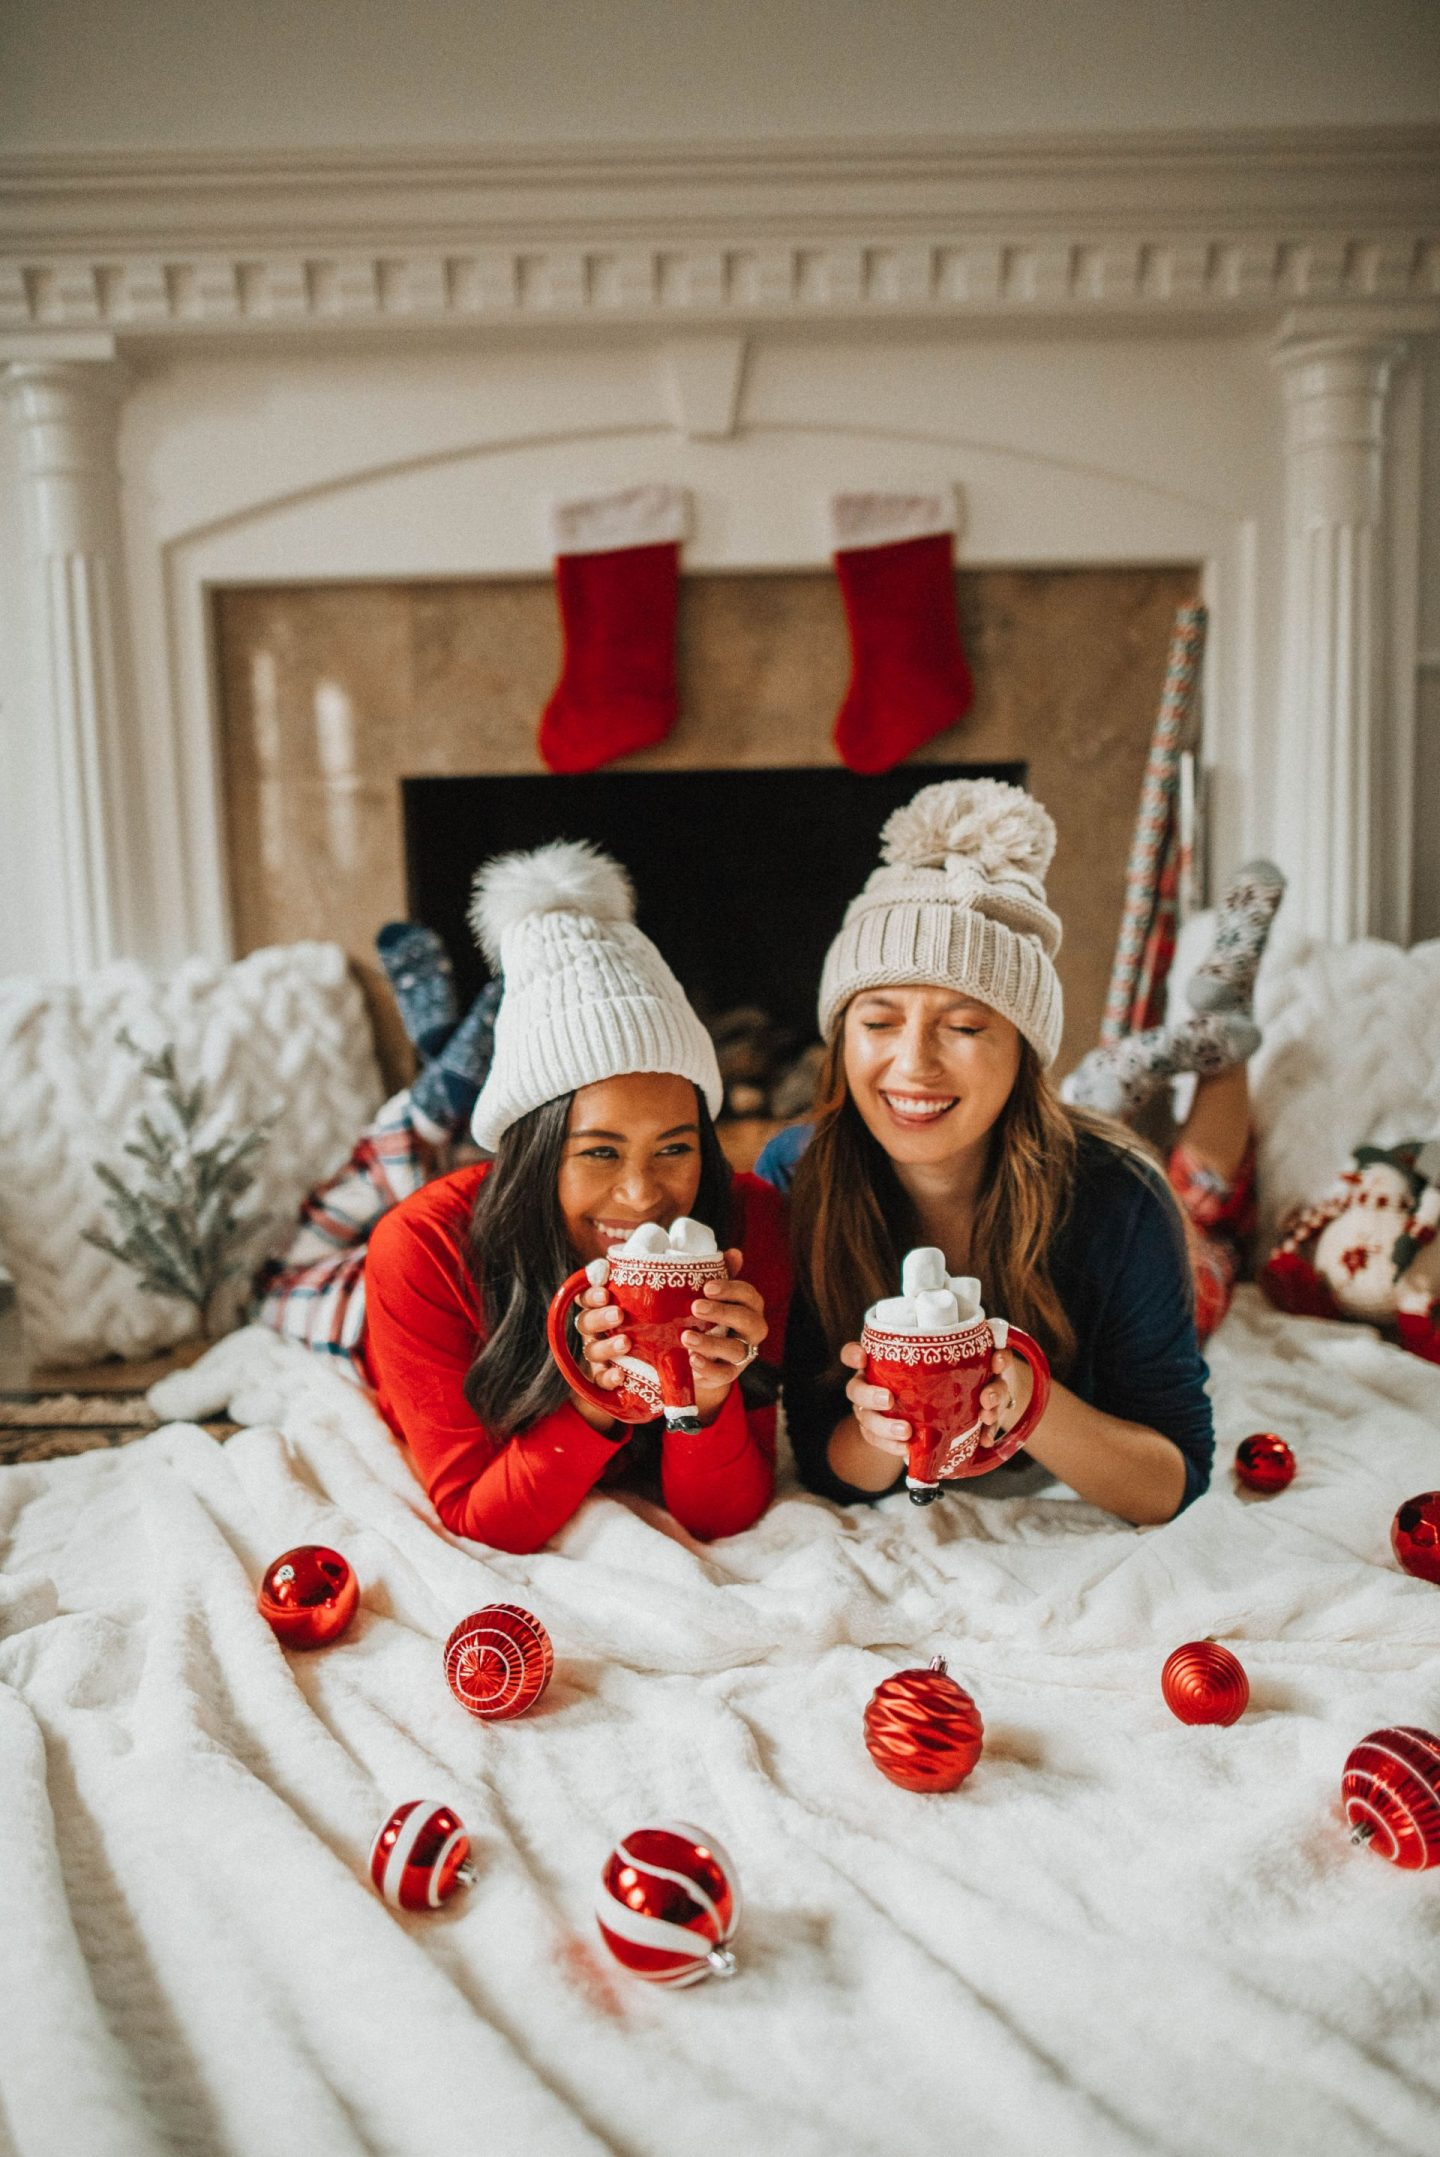 Christmas pajamas - hot cocoa by the fireplace - image from www.emmasedition.com - Instagram @emmasedition